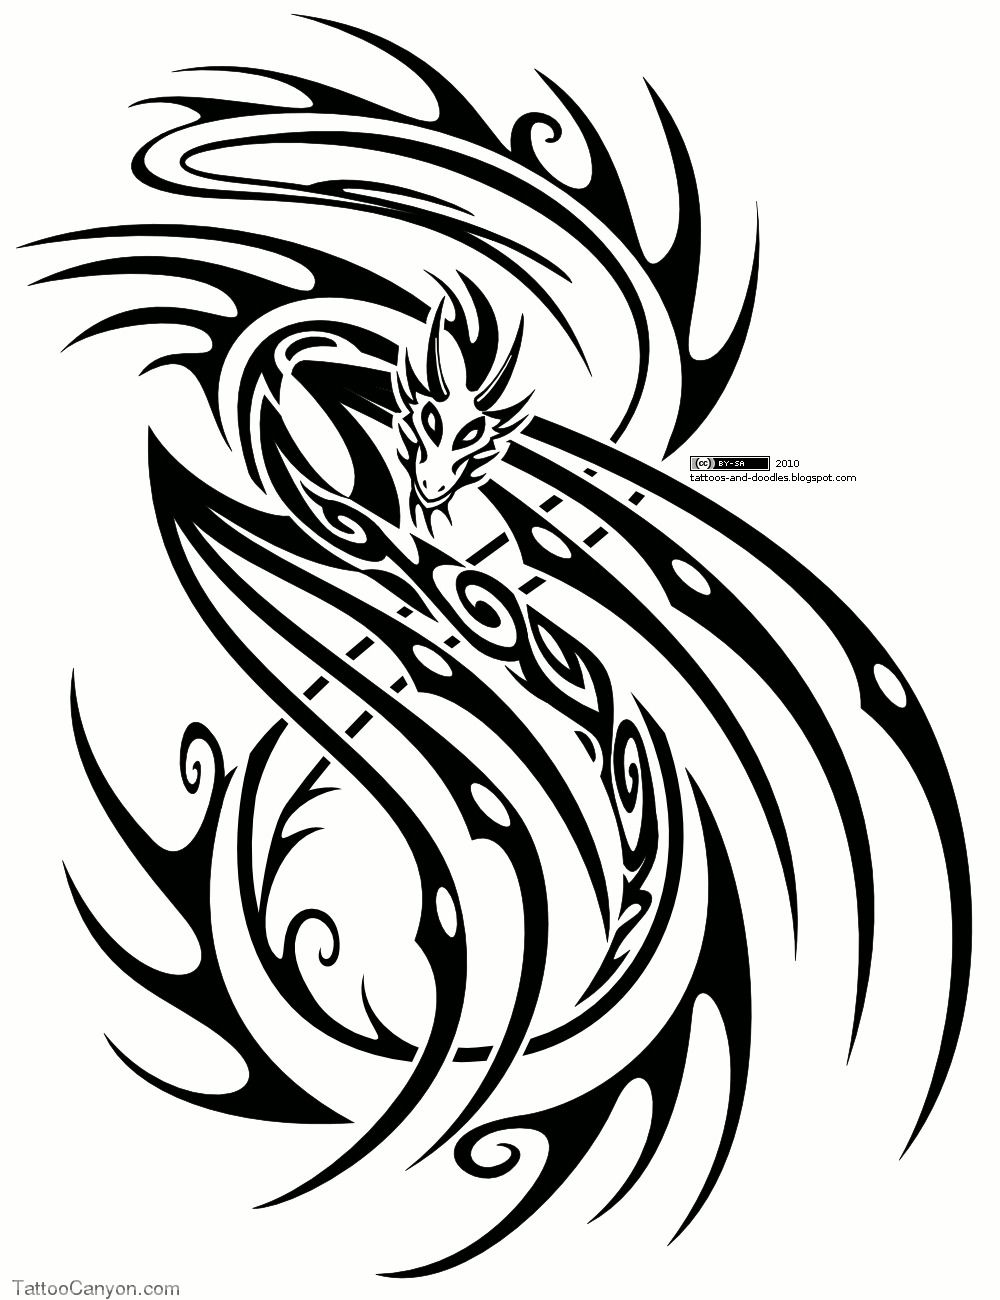 Dragon Tattoo Design Free Download 7350 Tribal Picture 11561 Tribal Dragon Tattoos Tribal Tattoos Tribal Tattoo Designs